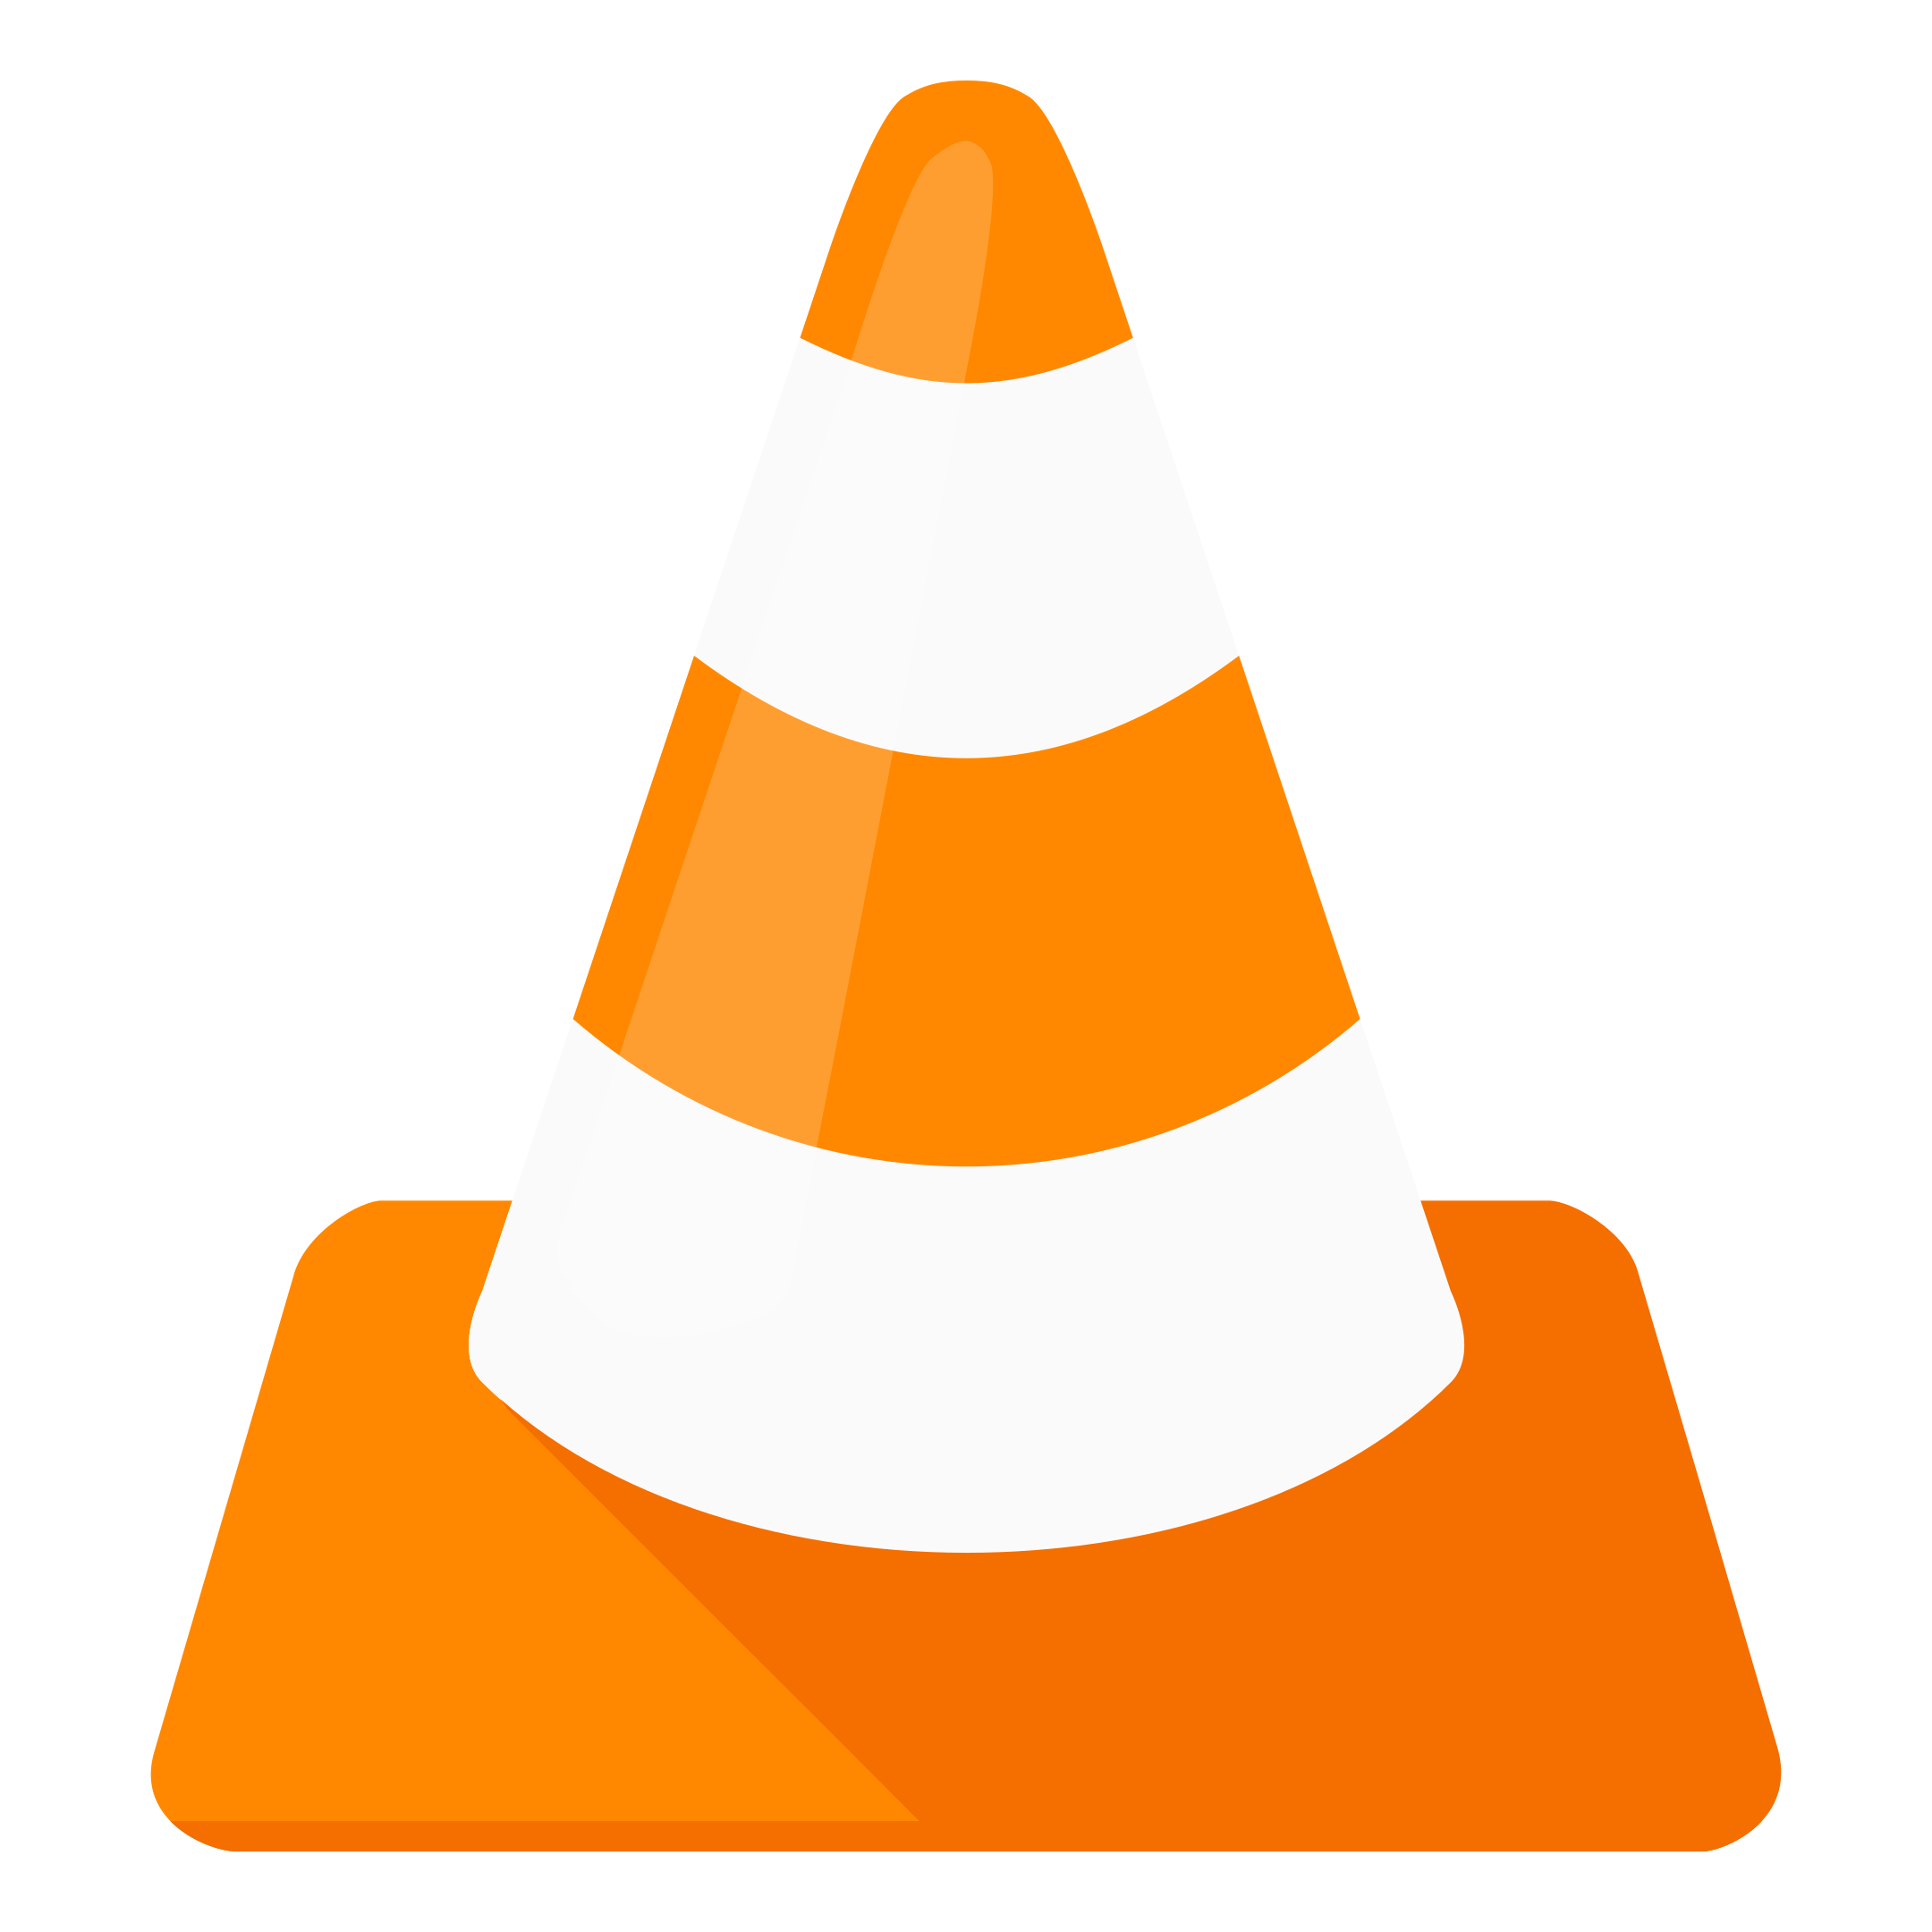 vlc-android/res/drawable-hdpi/ic_tv_icon_big.png